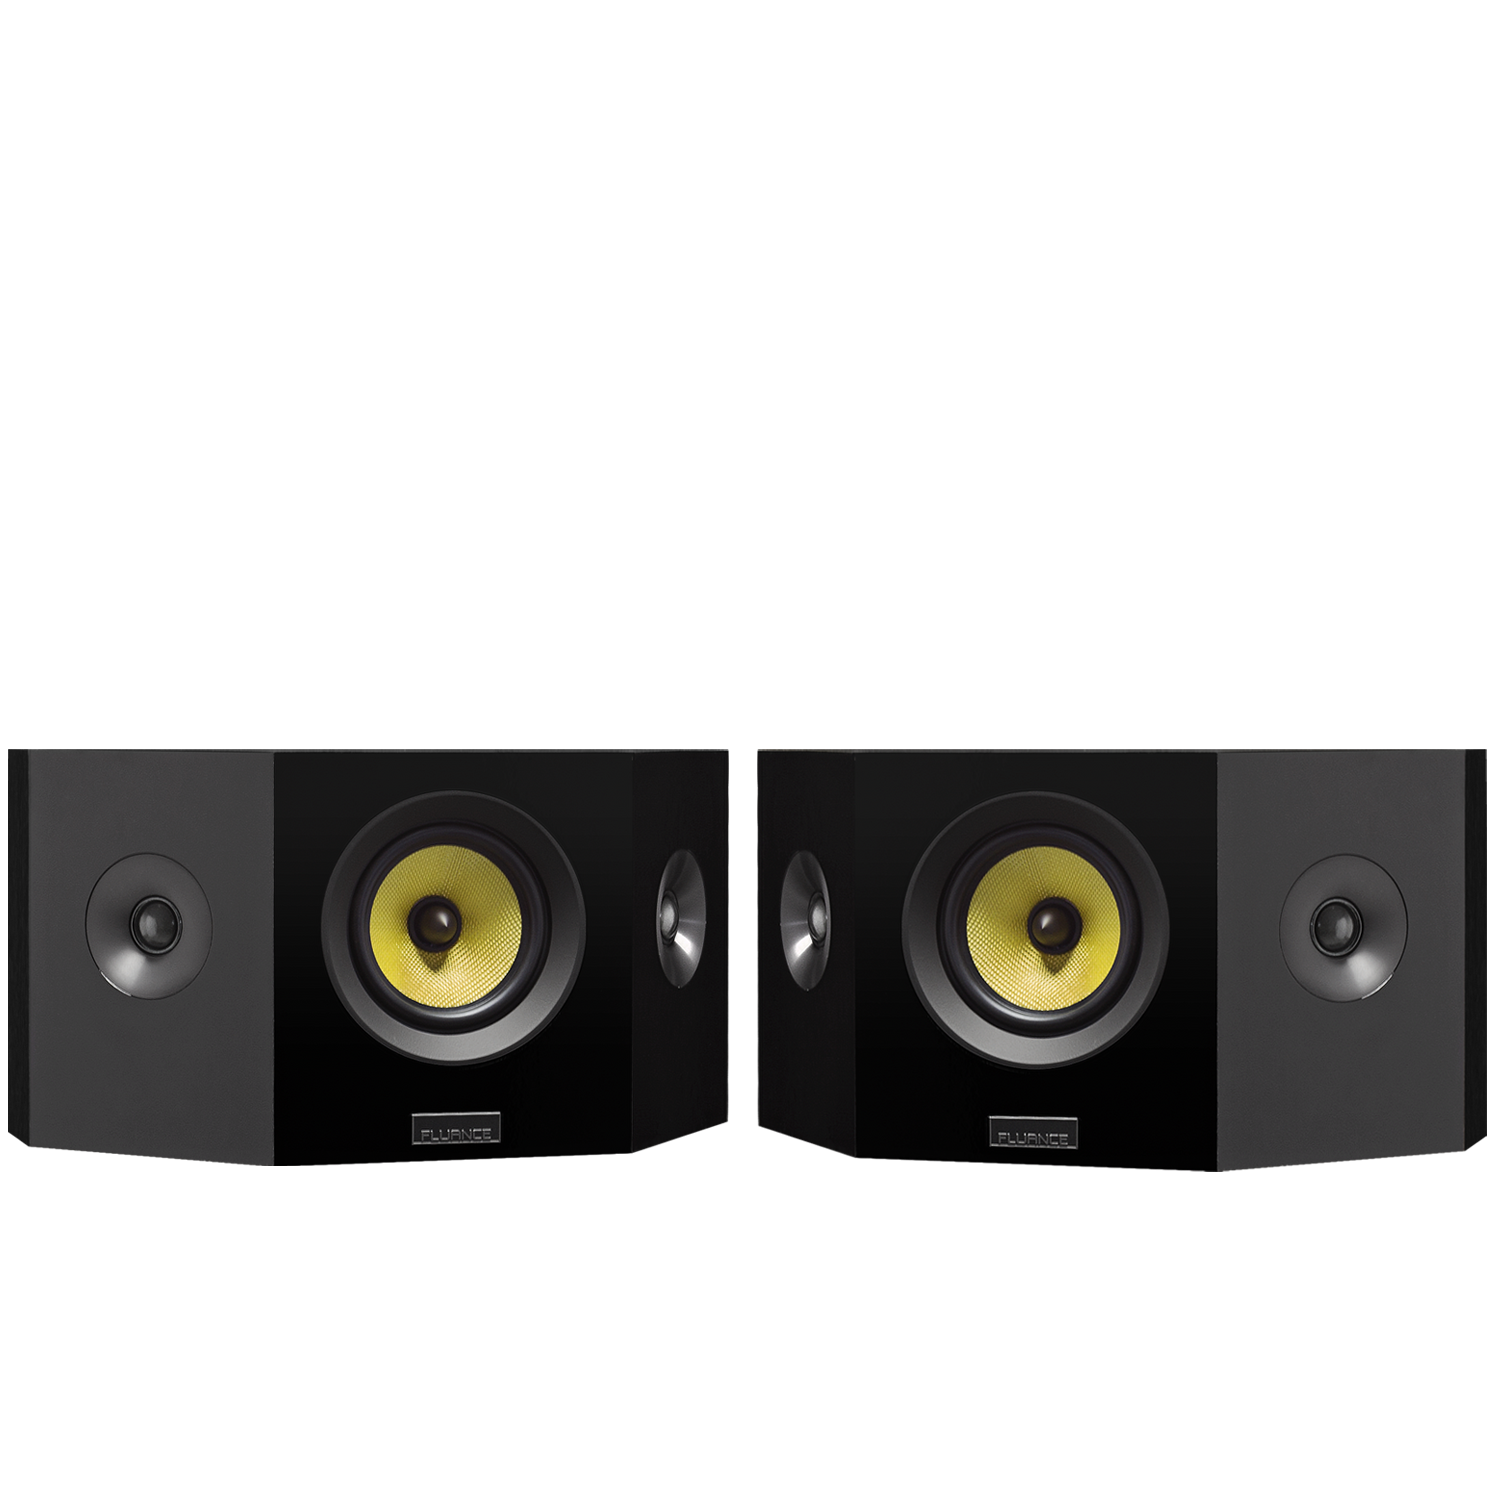 Fluance HFBPW Black Ash Bipolar Wide Dispersion Speakers - Black Ash